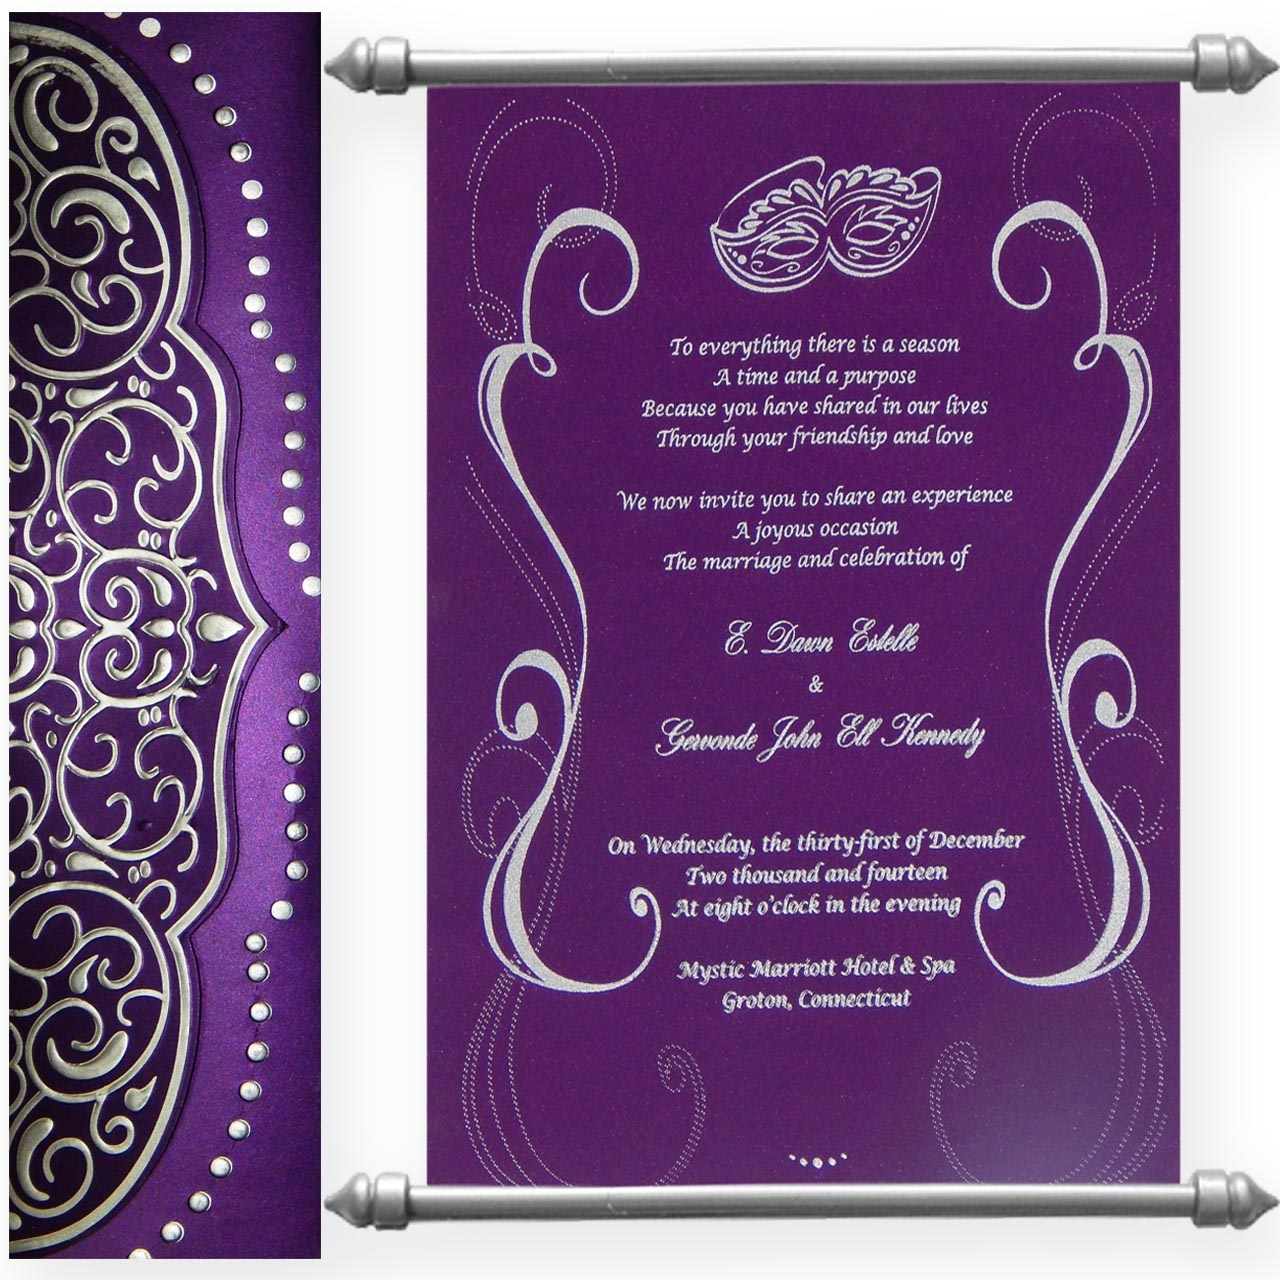 Indian Wedding Invitations Online With Variety Of Options To Chose From